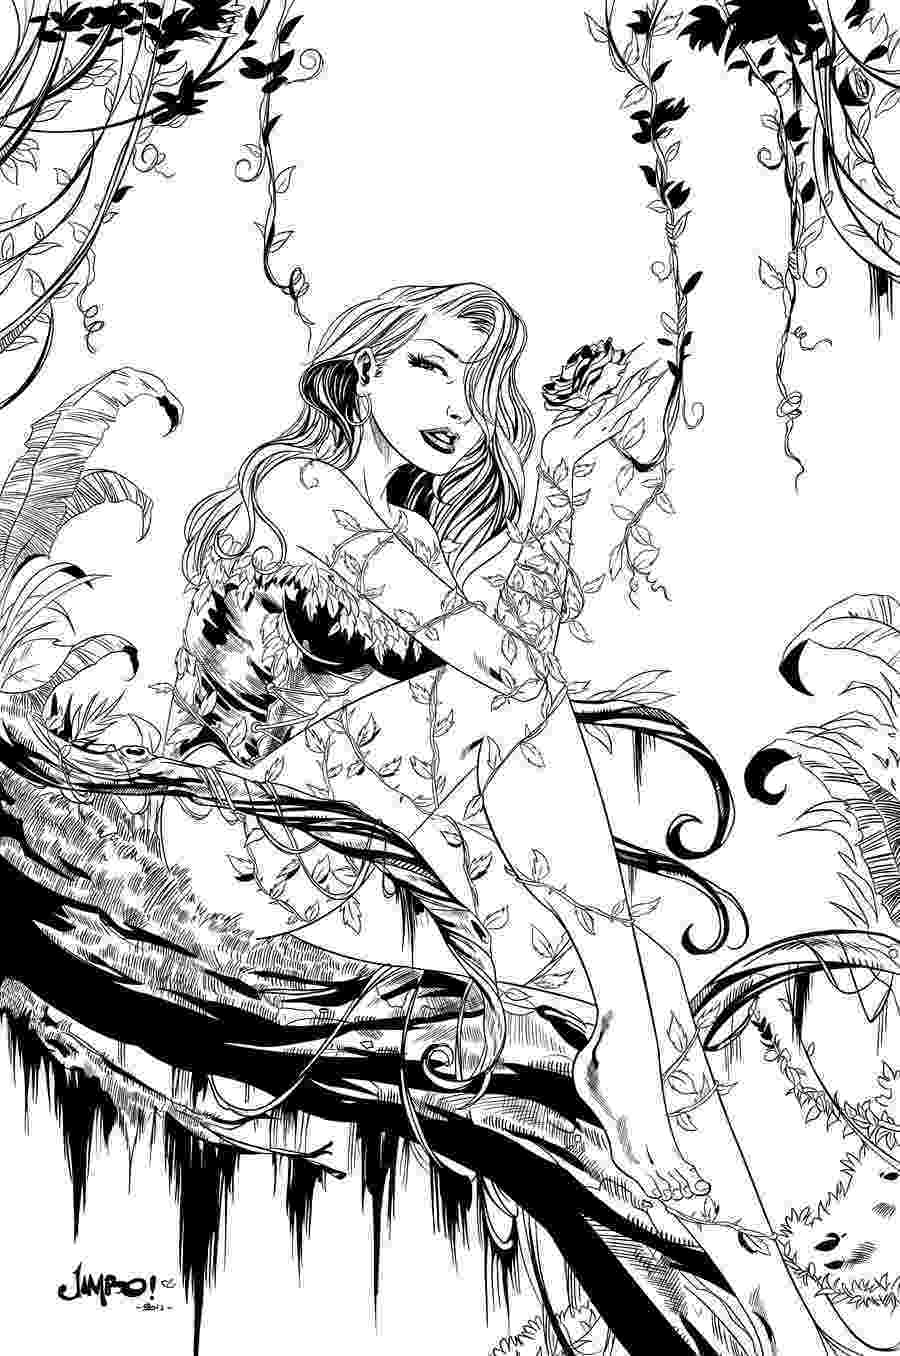 poison ivy coloring page coloring for adults kleuren voor volwassenen wood page coloring ivy poison